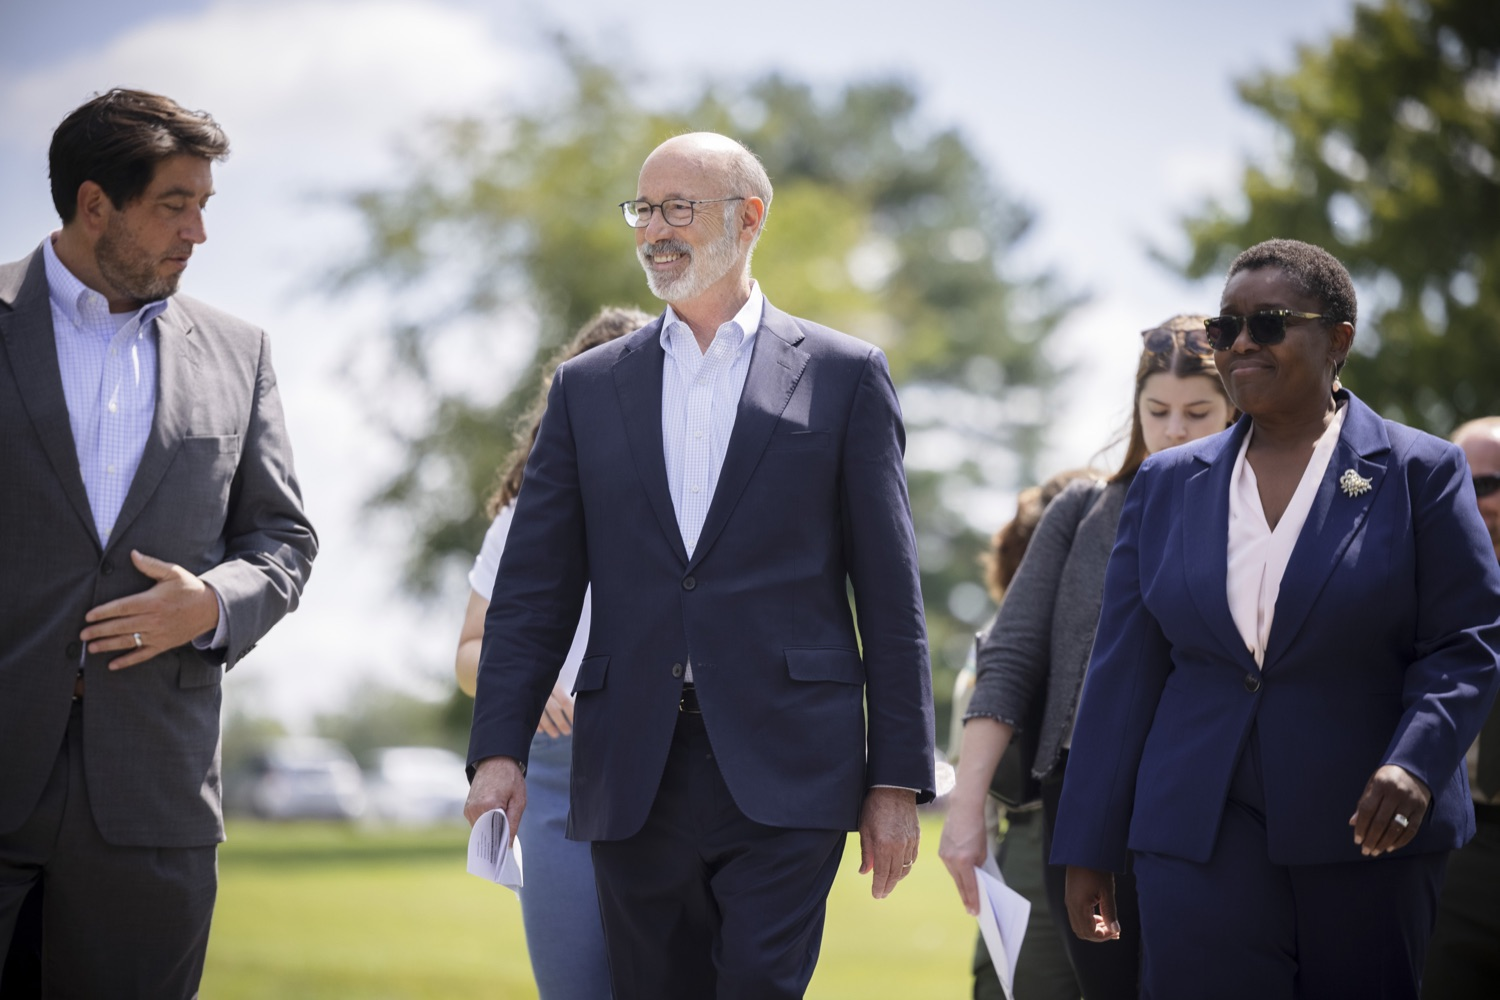 """<a href=""""https://filesource.wostreaming.net/commonwealthofpa/photo/19111_gov_parkVaccines_dz_002.jpg"""" target=""""_blank"""">⇣Download Photo<br></a>Pennsylvania Governor Tom Wolf speaking with Acting Physician General Dr. Denise Johnson and Mike Walsh, DCNR Executive Deputy Secretary. Governor Tom Wolf today announced that the Department of Health (DOH) and Department of Conservation and Natural Resources (DCNR) are partnering to hold COVID-19 vaccine clinics at five state parks across the commonwealth to help expand access to the COVID-19 vaccine.  Harrisburg, PA -- September 10, 2021"""